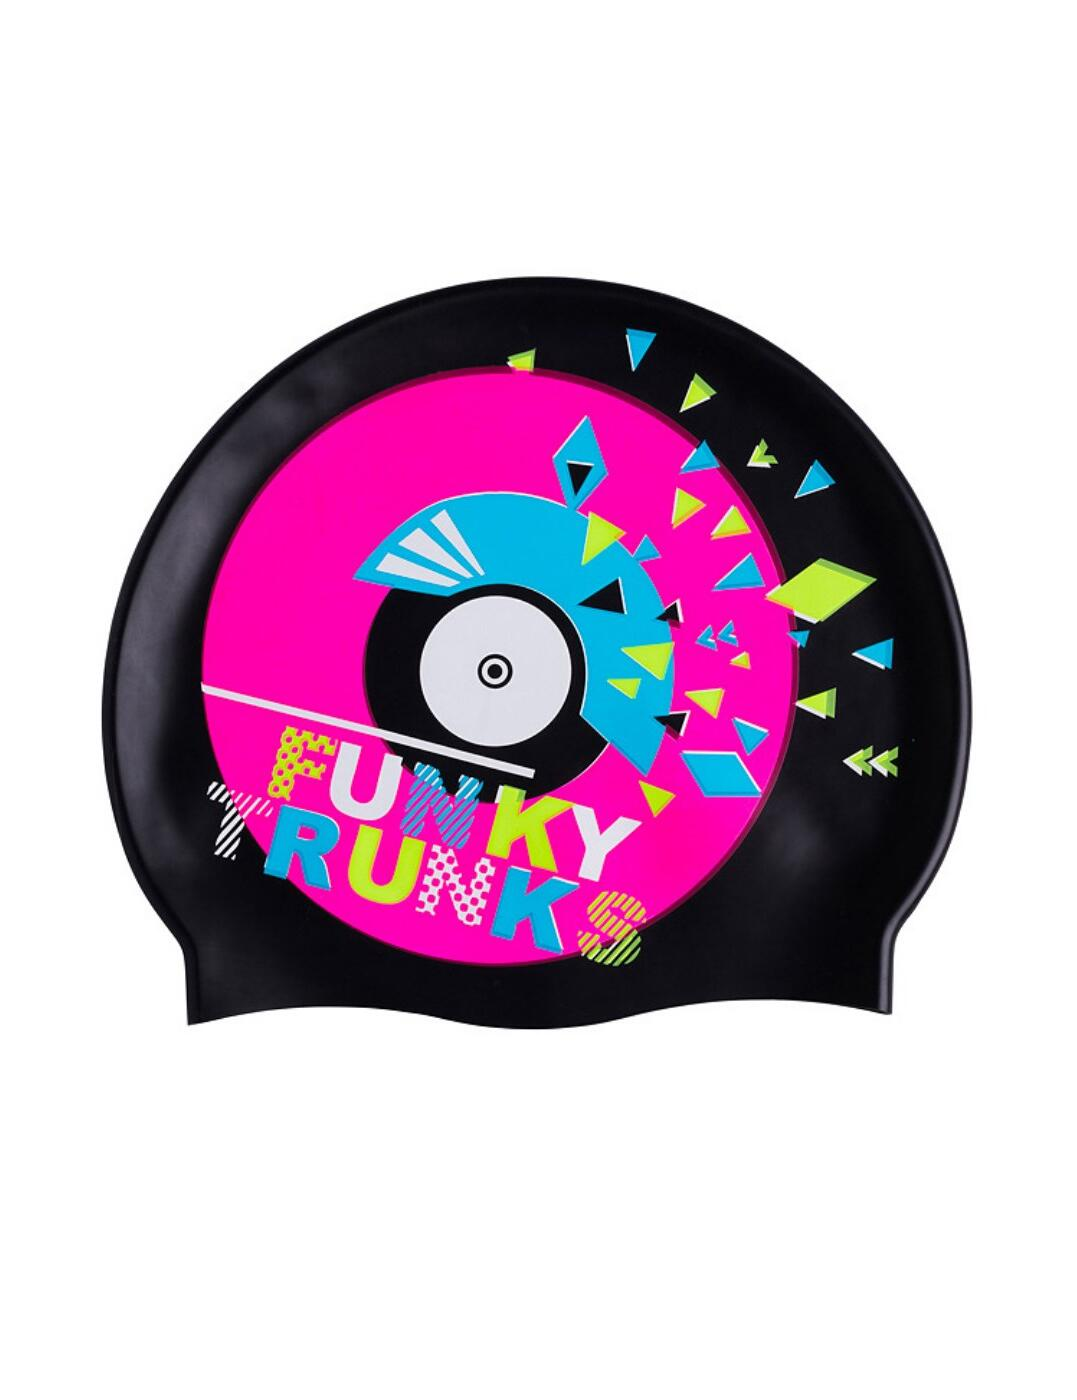 FT9901173 Funky Trunks Silicone Swimming Cap - FT9901173 Disco Stu